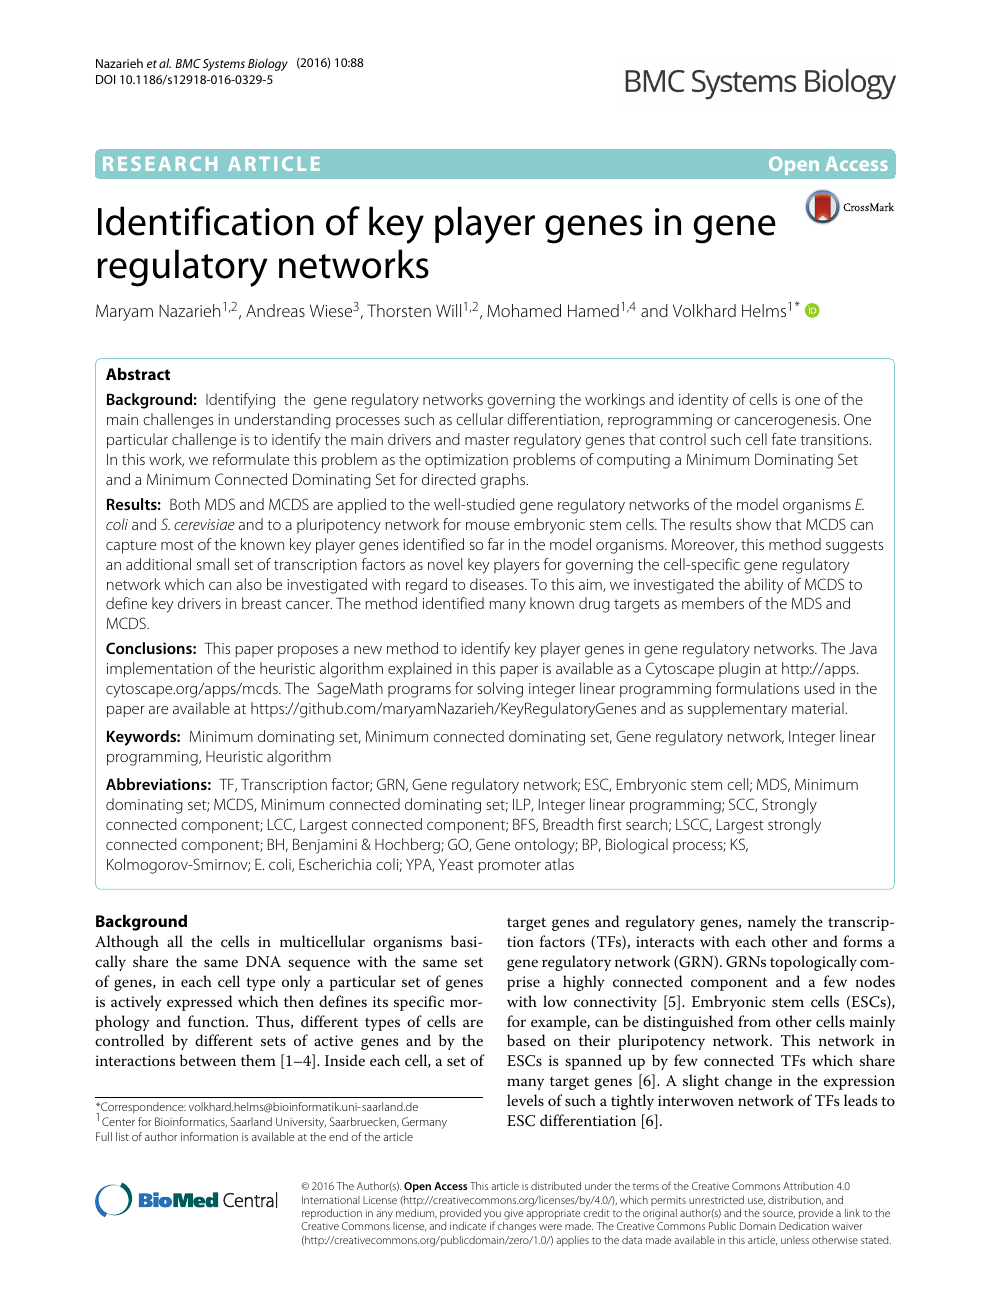 Identification of key player genes in gene regulatory